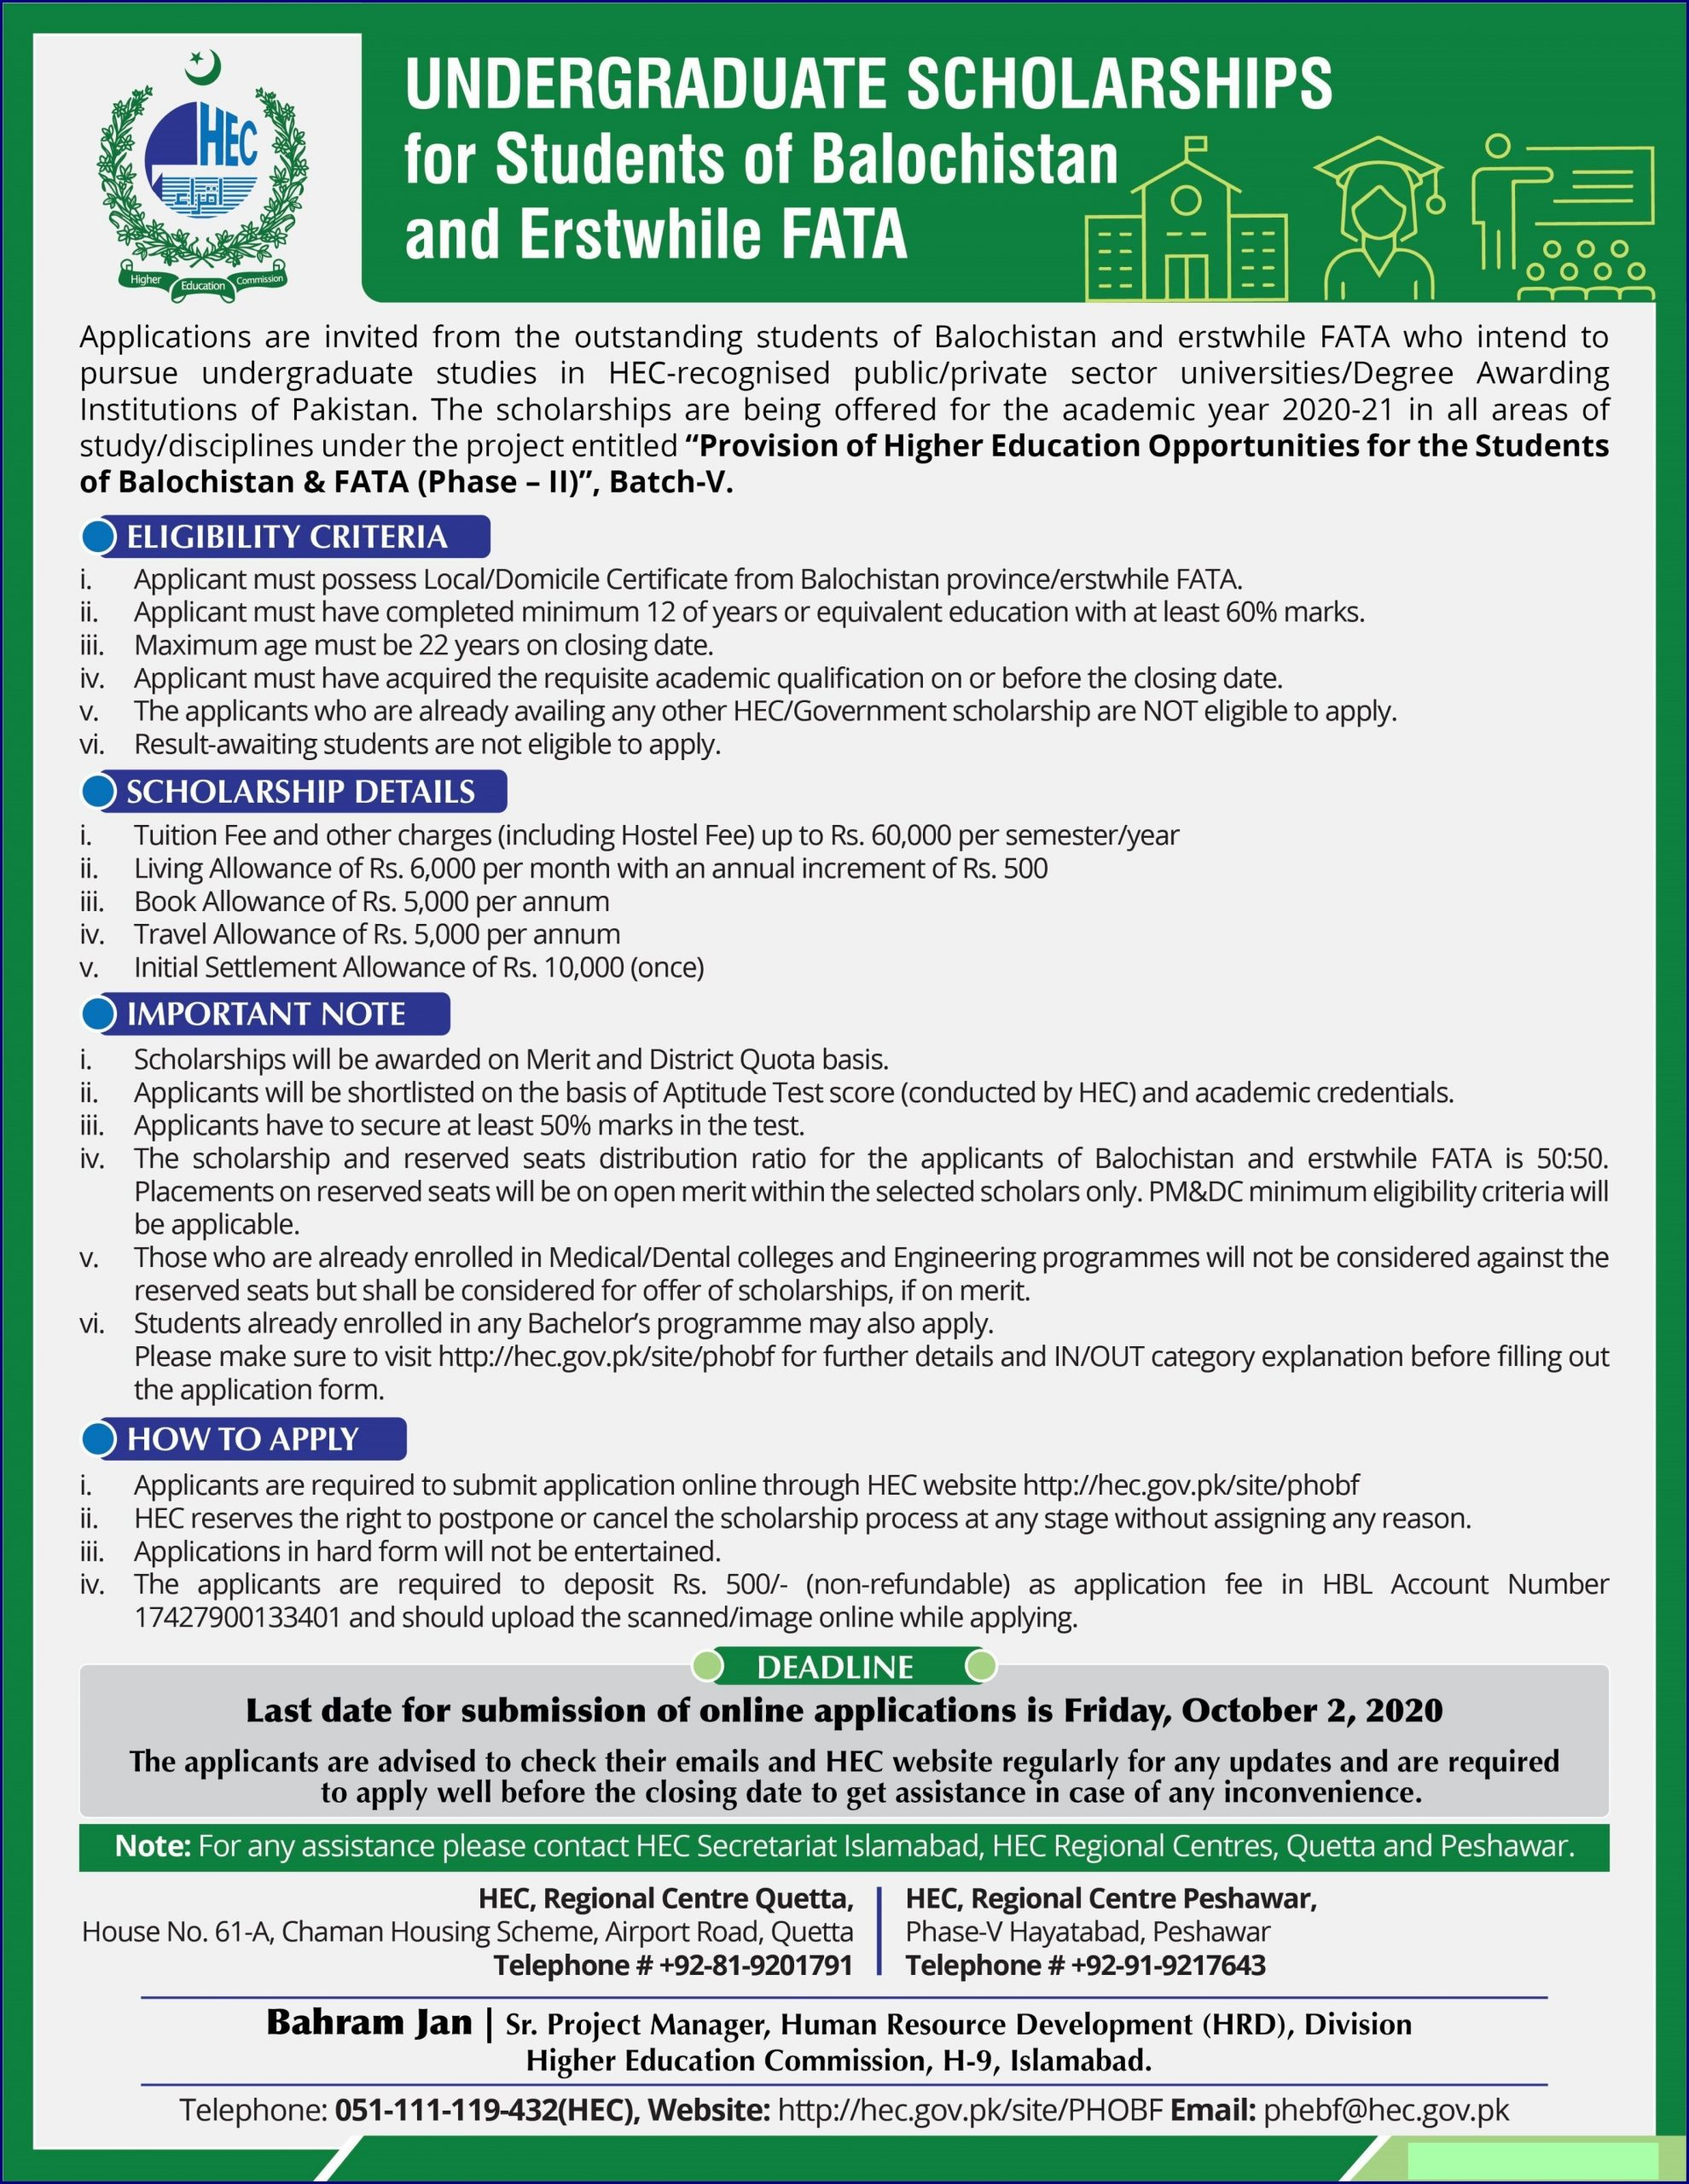 HEC Undergraduate Scholarships for Students of Balochistan & FATA